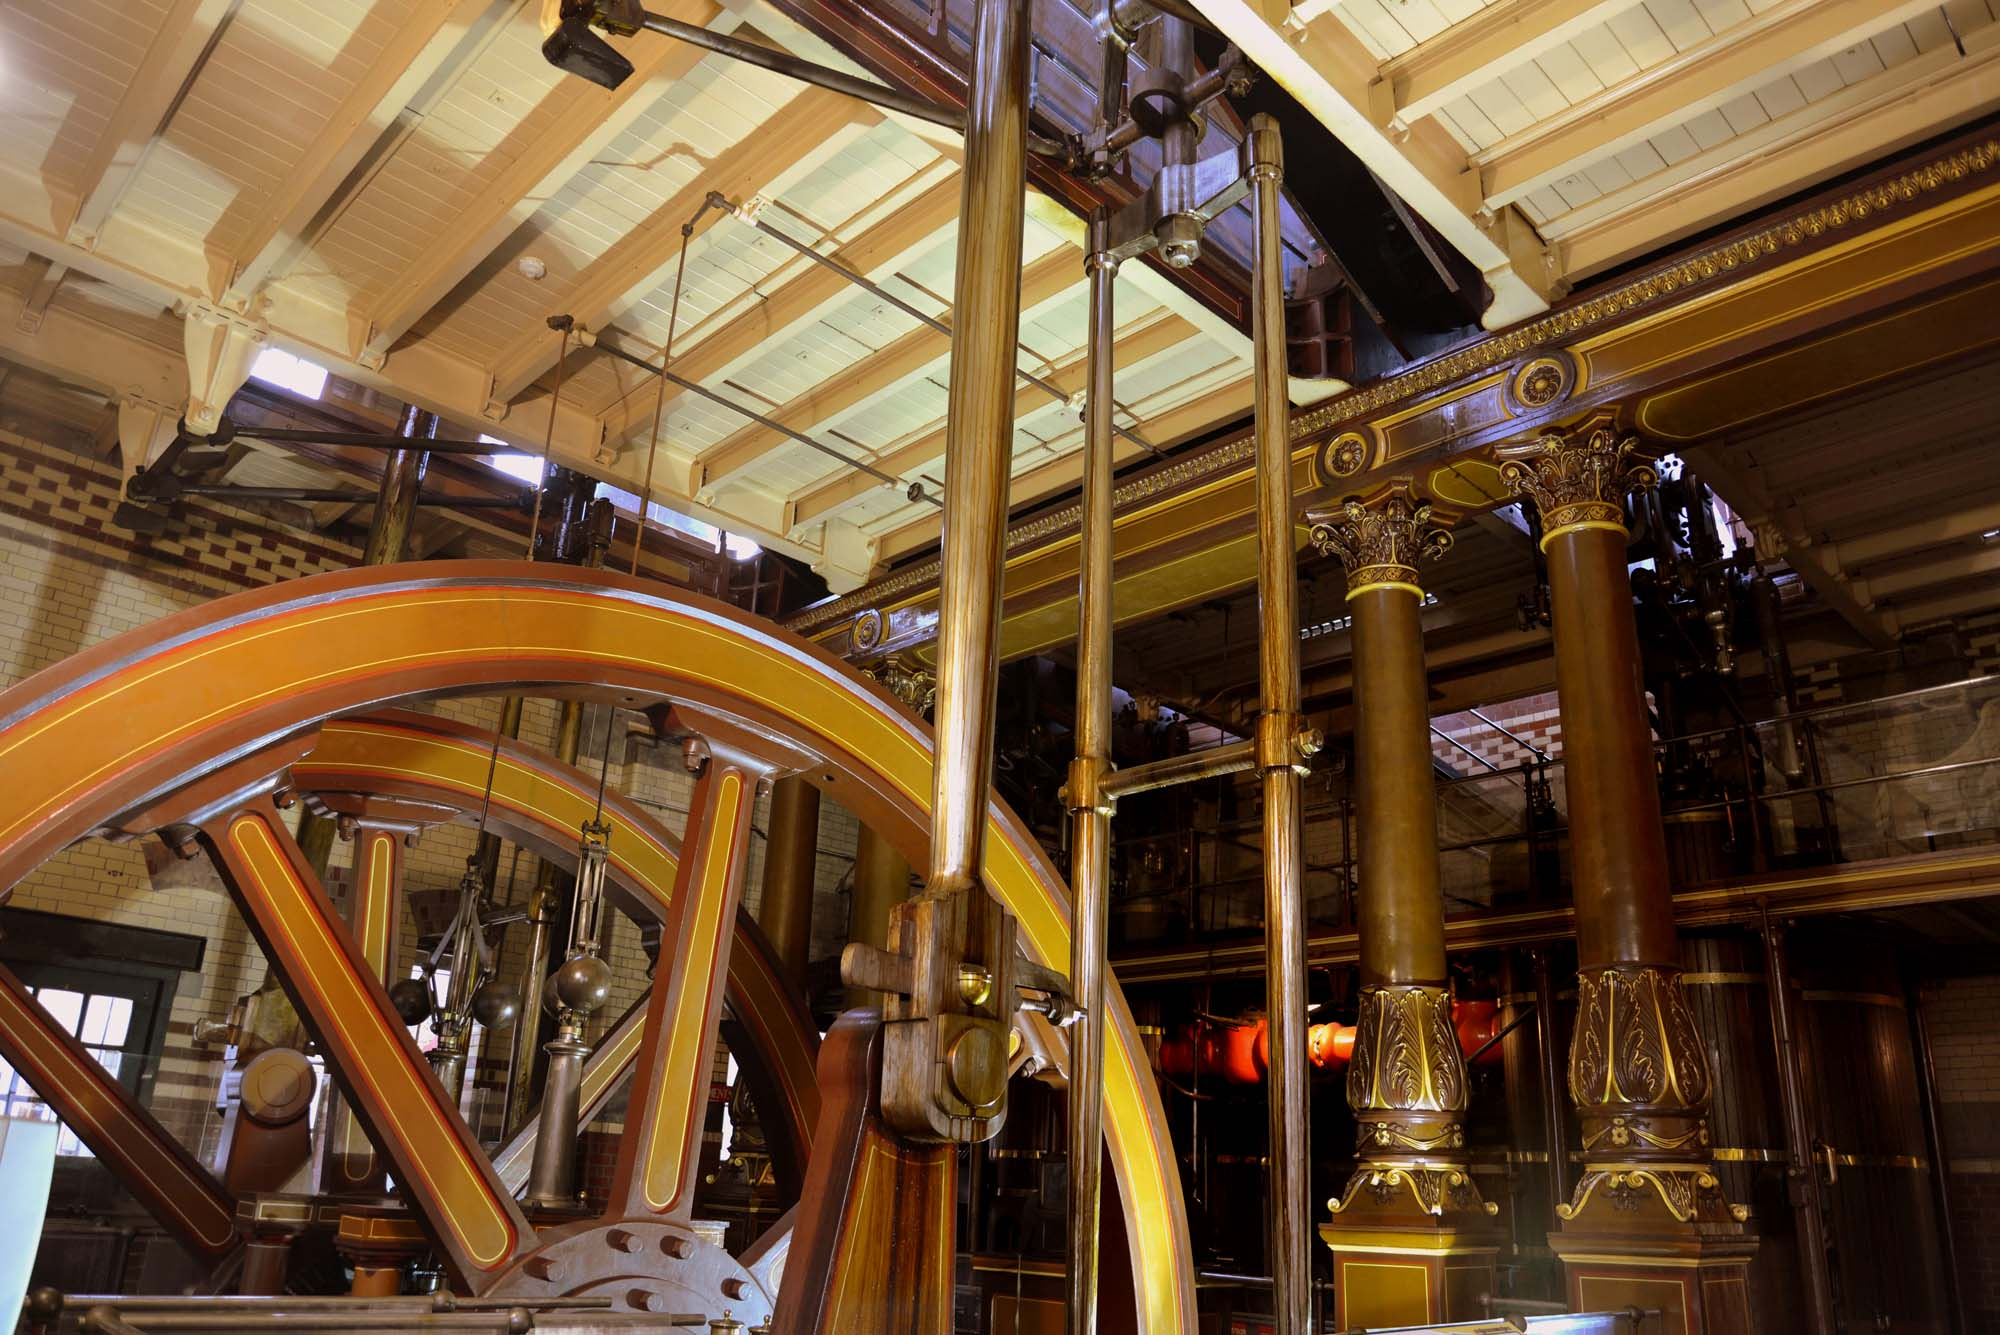 One of the large flywheels and the ornate ironwork of the beam engines -